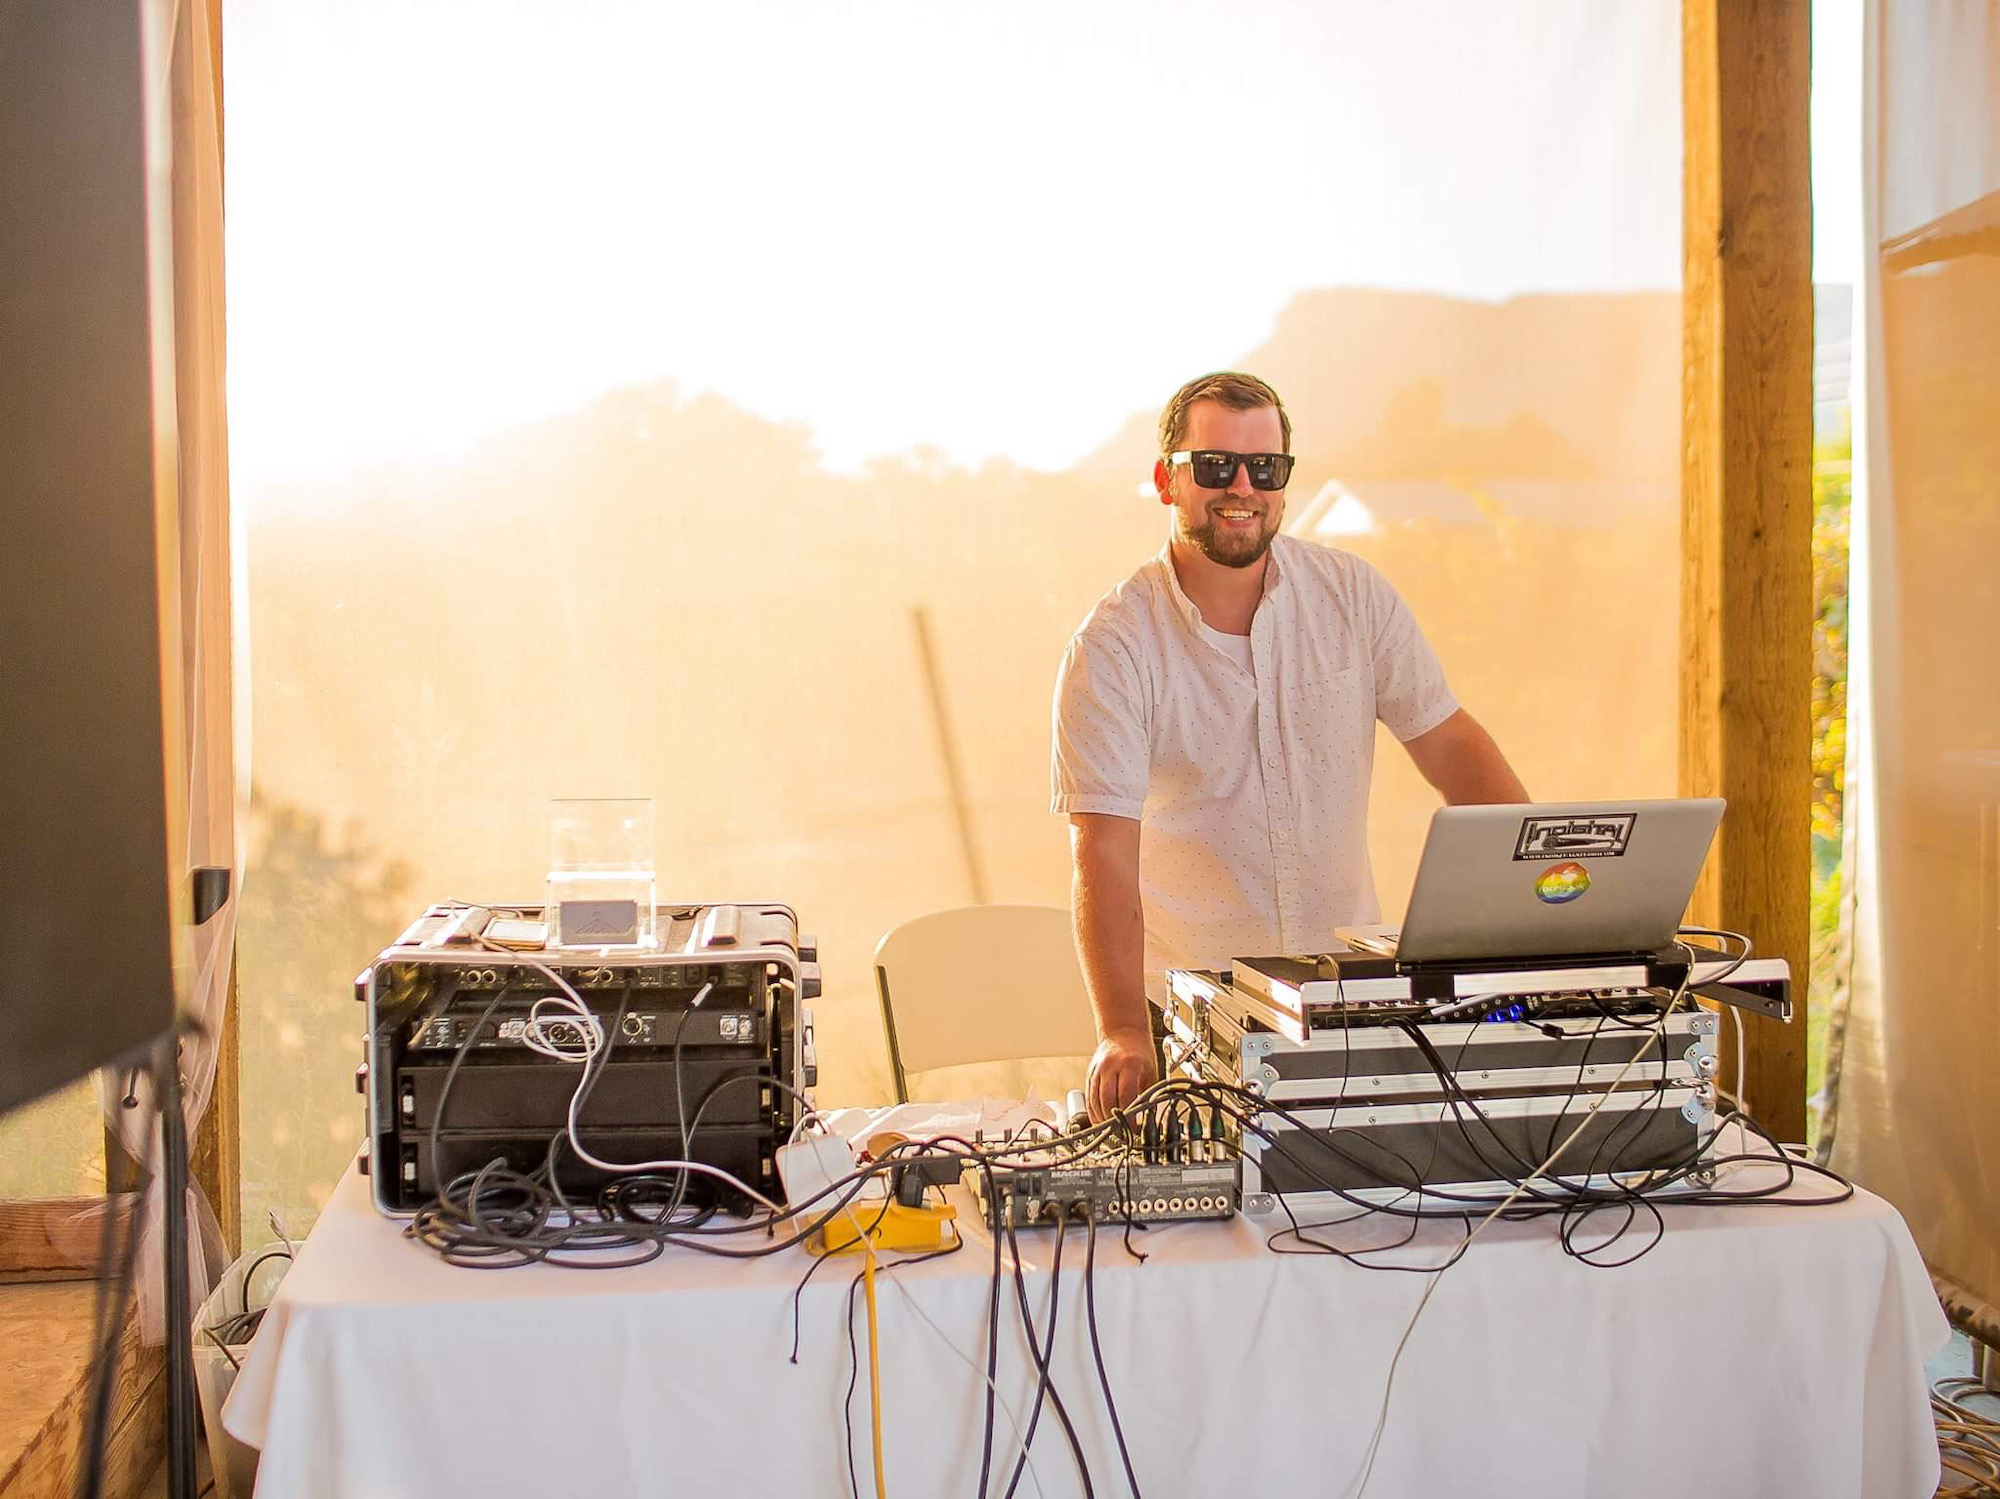 DJ Beardly | DJ providing Music & Entertainment in Grand Junction, CO - featured on WED West Slope, a directory of western slope wedding vendors.